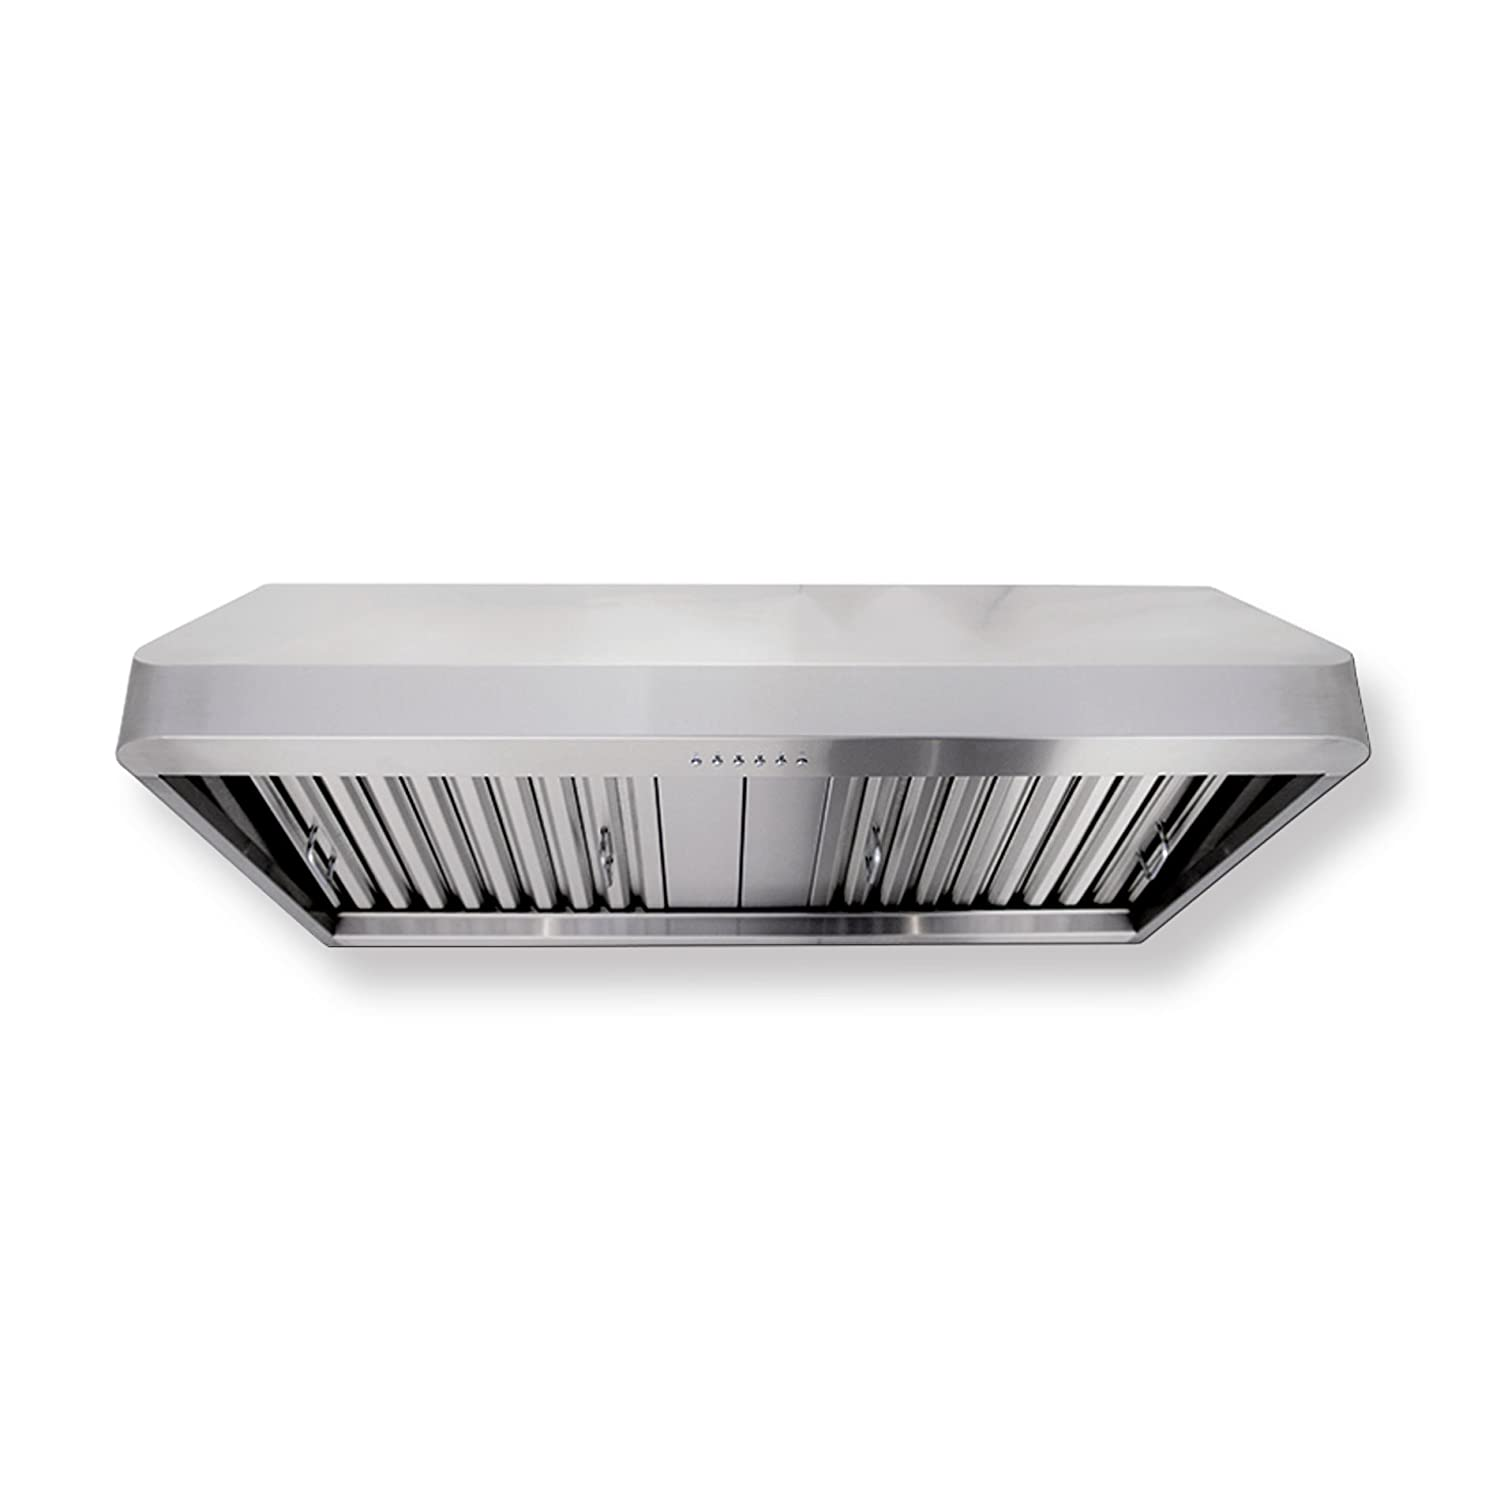 Proline PLJW 121 Wall/Under Cabinet Range Hood - 4 Speed - 900 Max CFM Blower - Stainless Professional Baffle Filters Dishwasher Safe - 3 Year Warranty - Sizes include 30 36 42 and 48 Inch